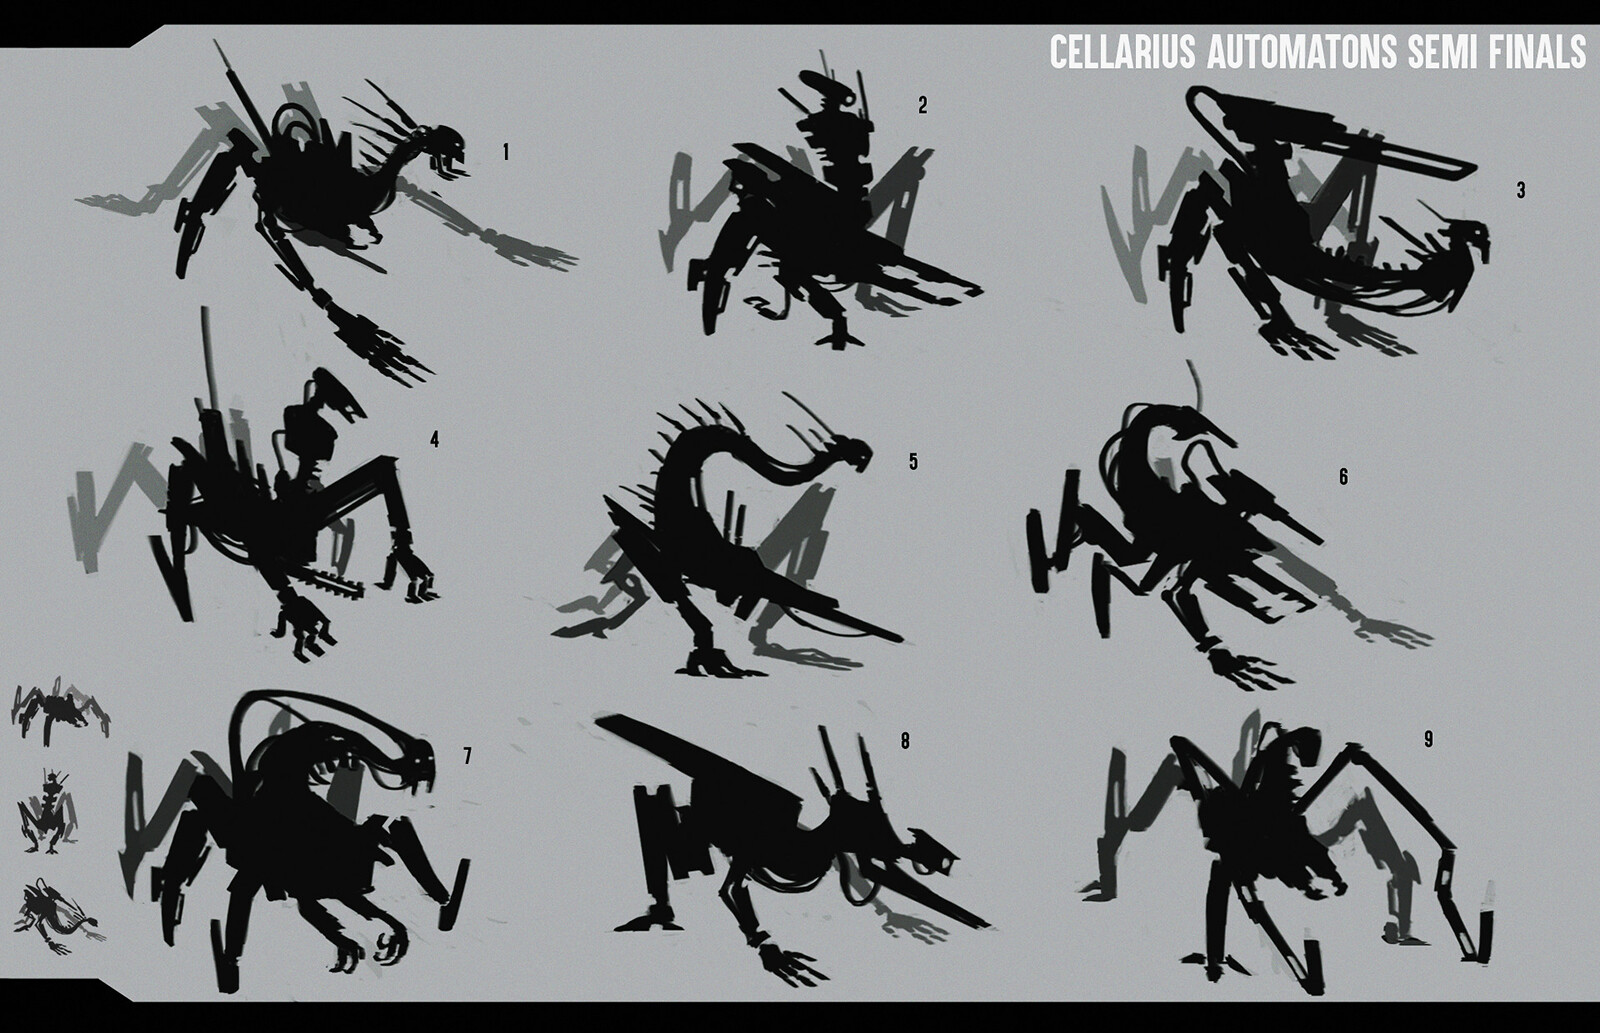 More silhouettes to finalize the shape and feel